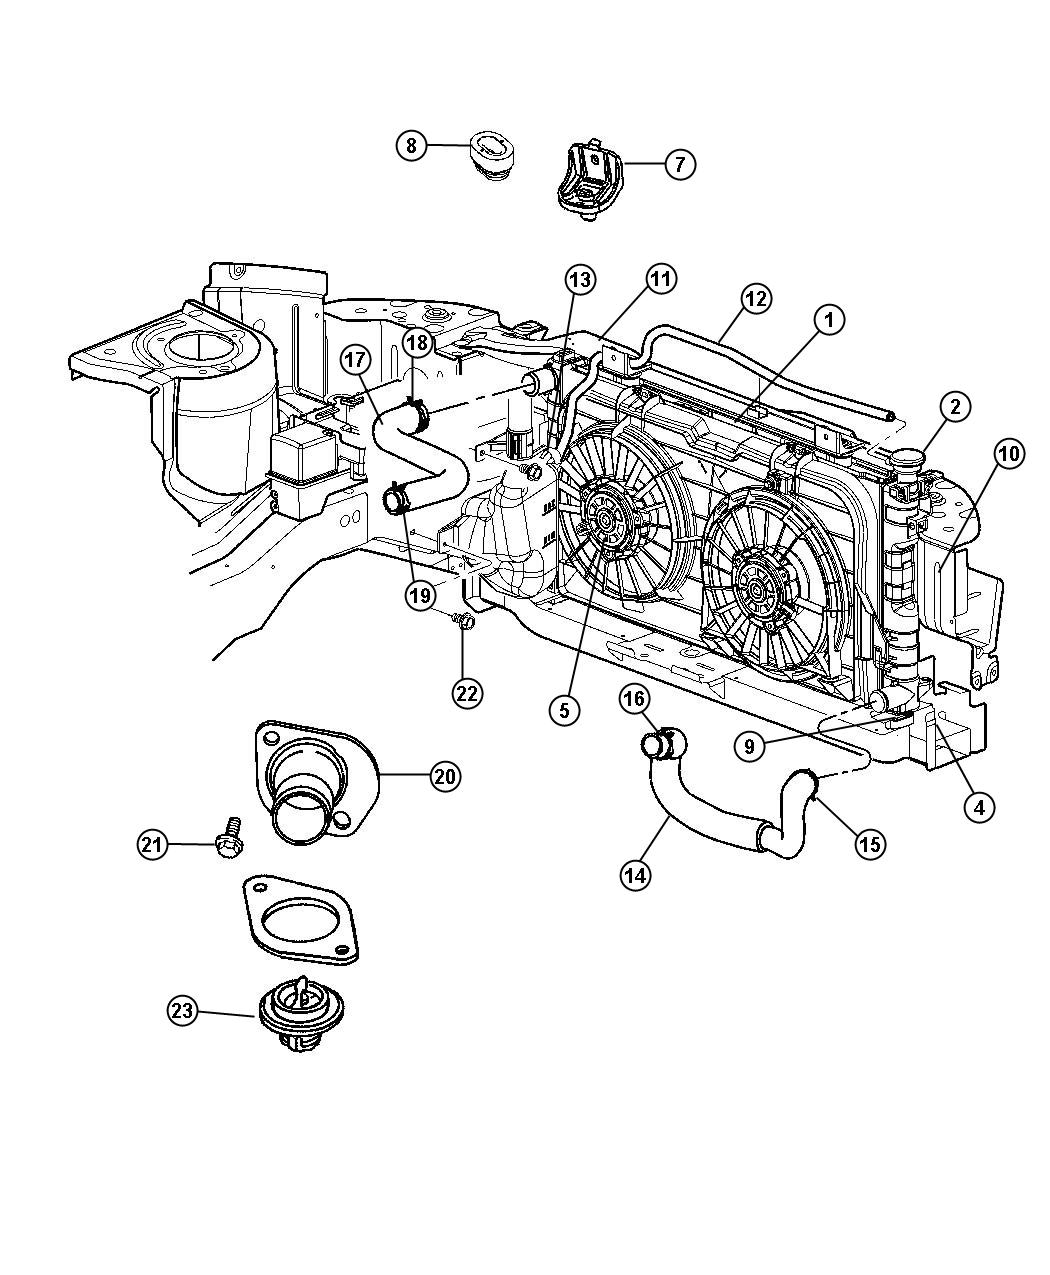 2007 Chrysler Town & Country Radiator. Engine cooling